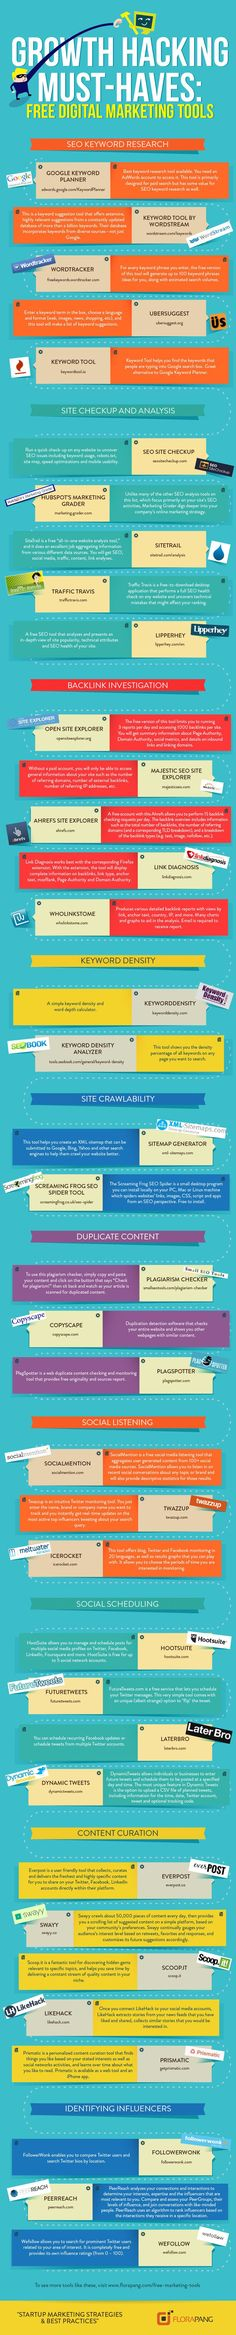 Growth Hacking Must-Haves: Free Digital Marketing Tools #infographic